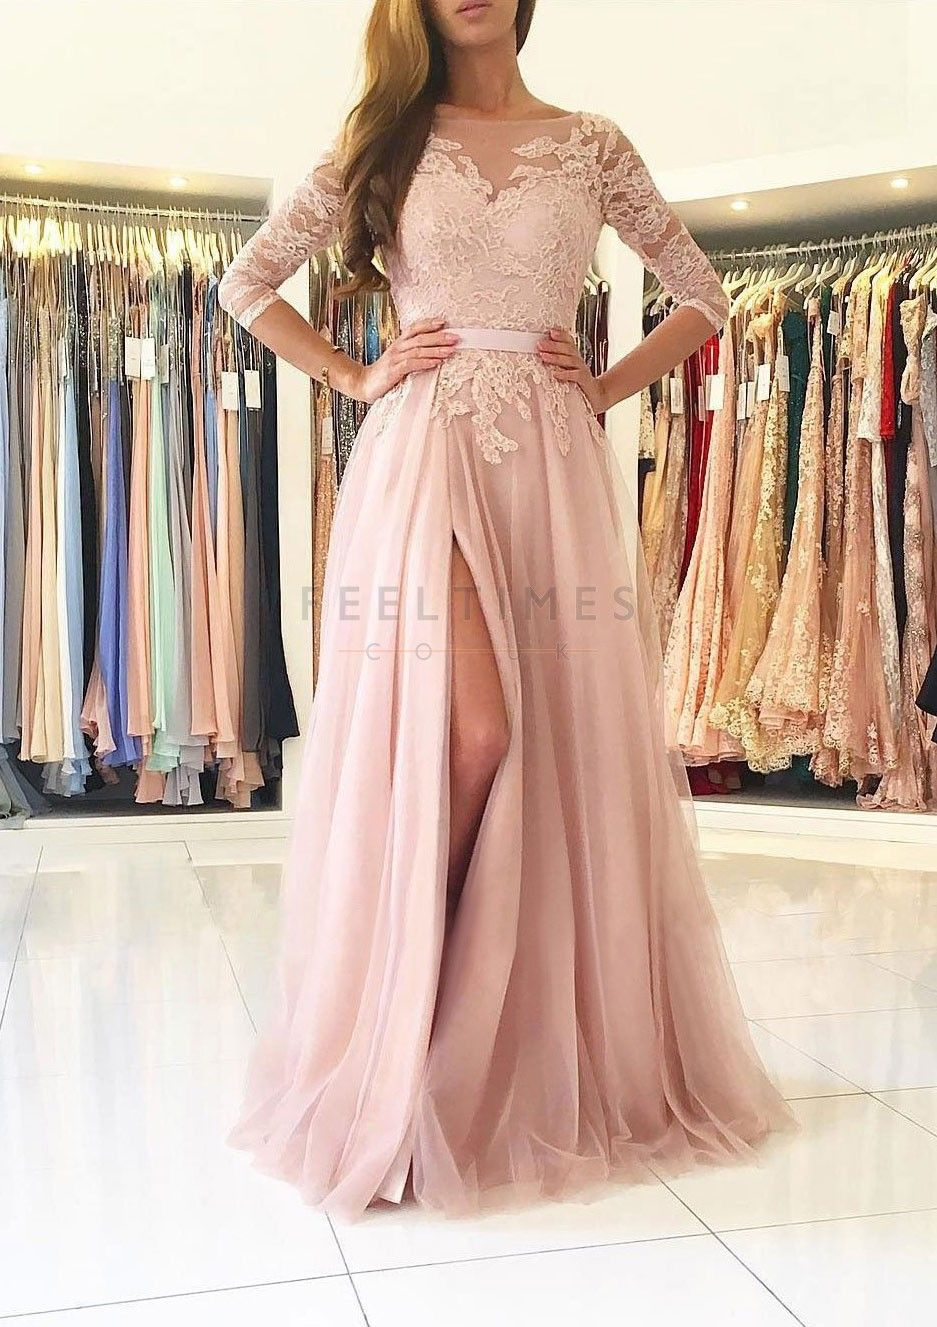 Tulle sleeve sweep train pink prom dress with lace feeltimes